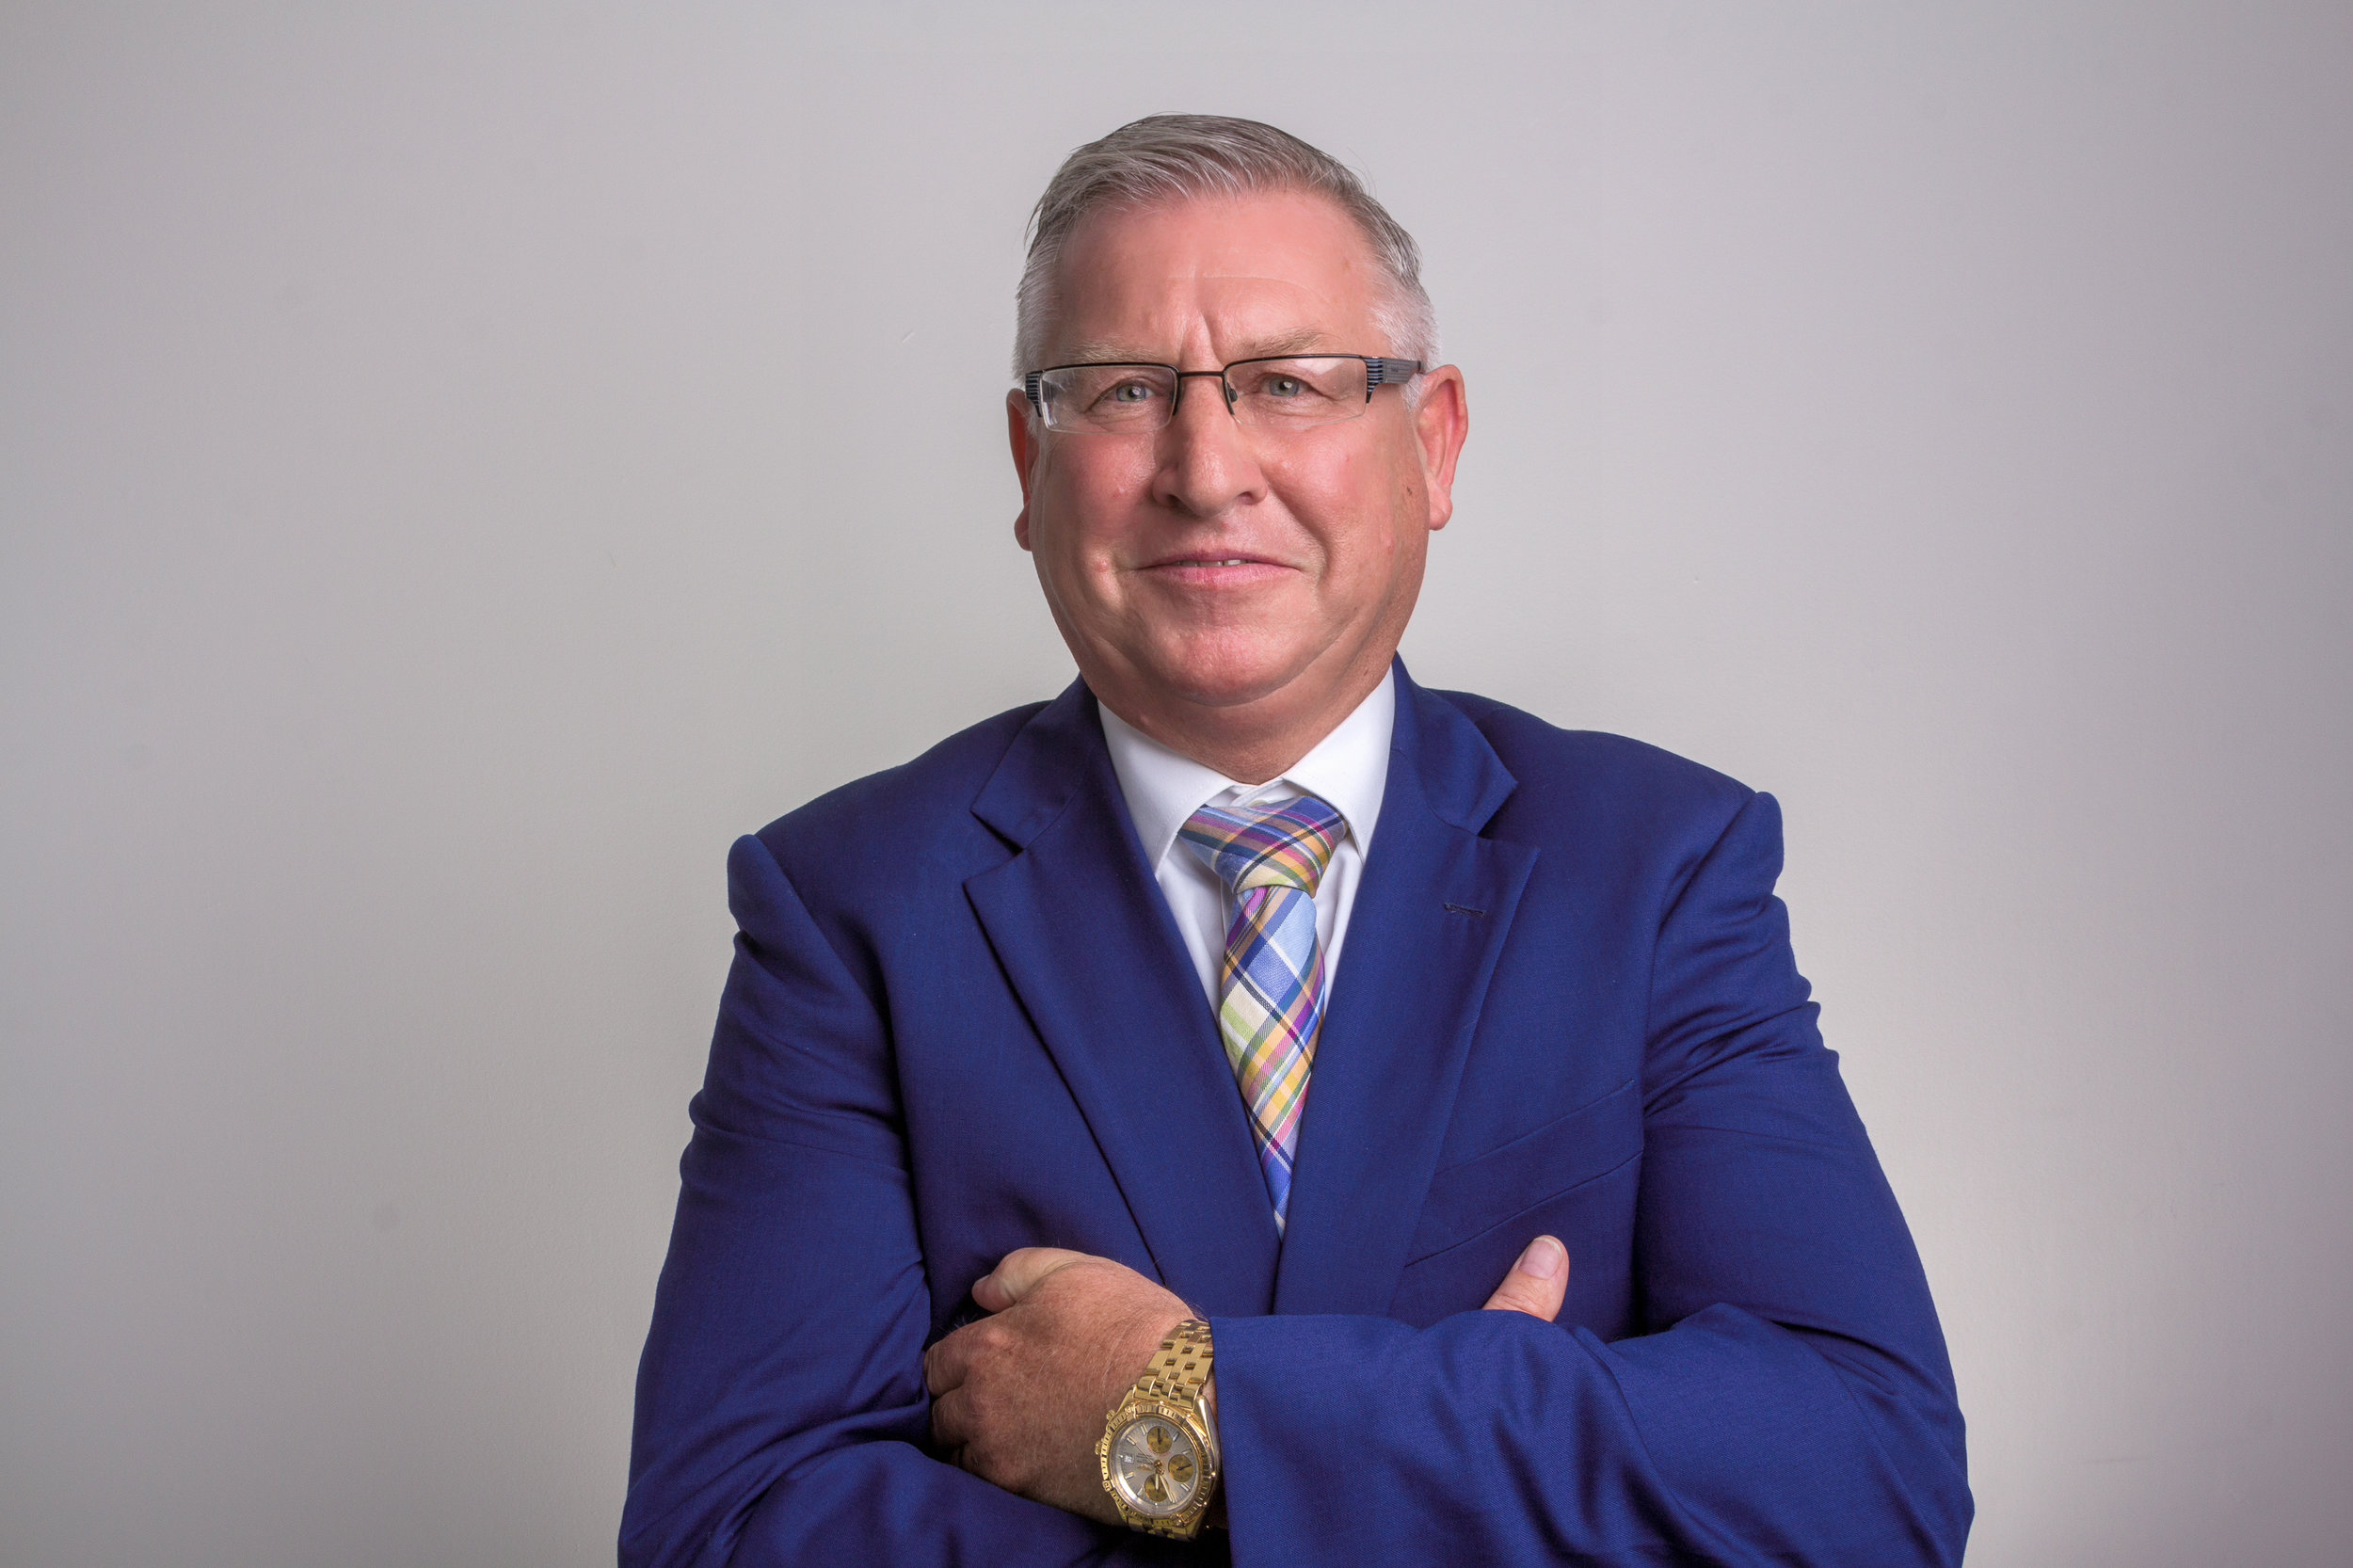 Jim Reid Chairman  Jim has worked in the life sciences sector for the past 40 years, holding senior roles within key firms including Axis-Shield PLC, Chiron S.A, Roche and Trinity Biotech Inc.   > Learn More